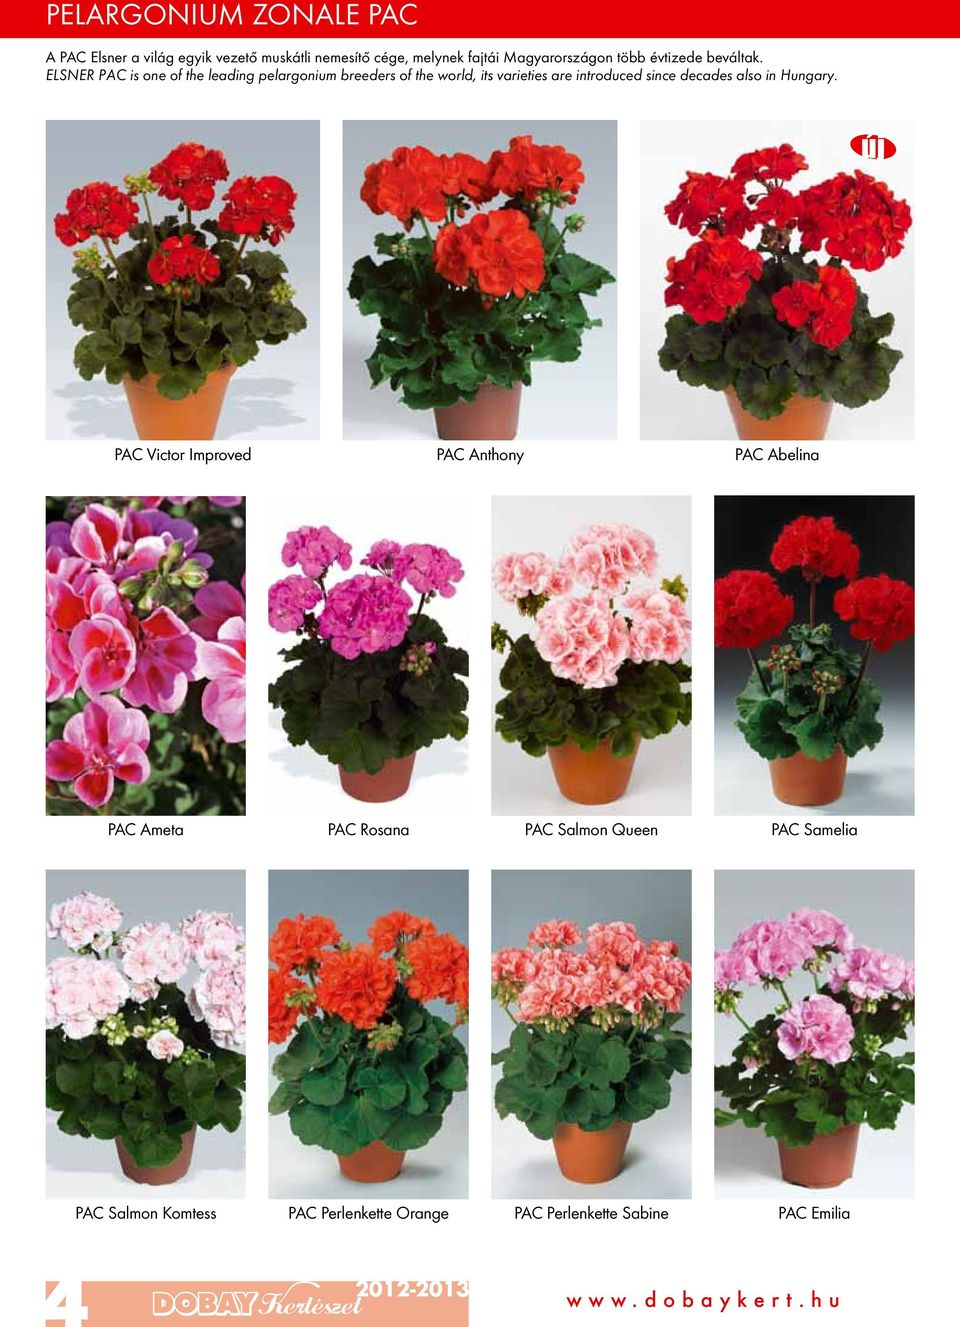 ELSNER PAC is one of the leading pelargonium breeders of the world, its varieties are introduced since